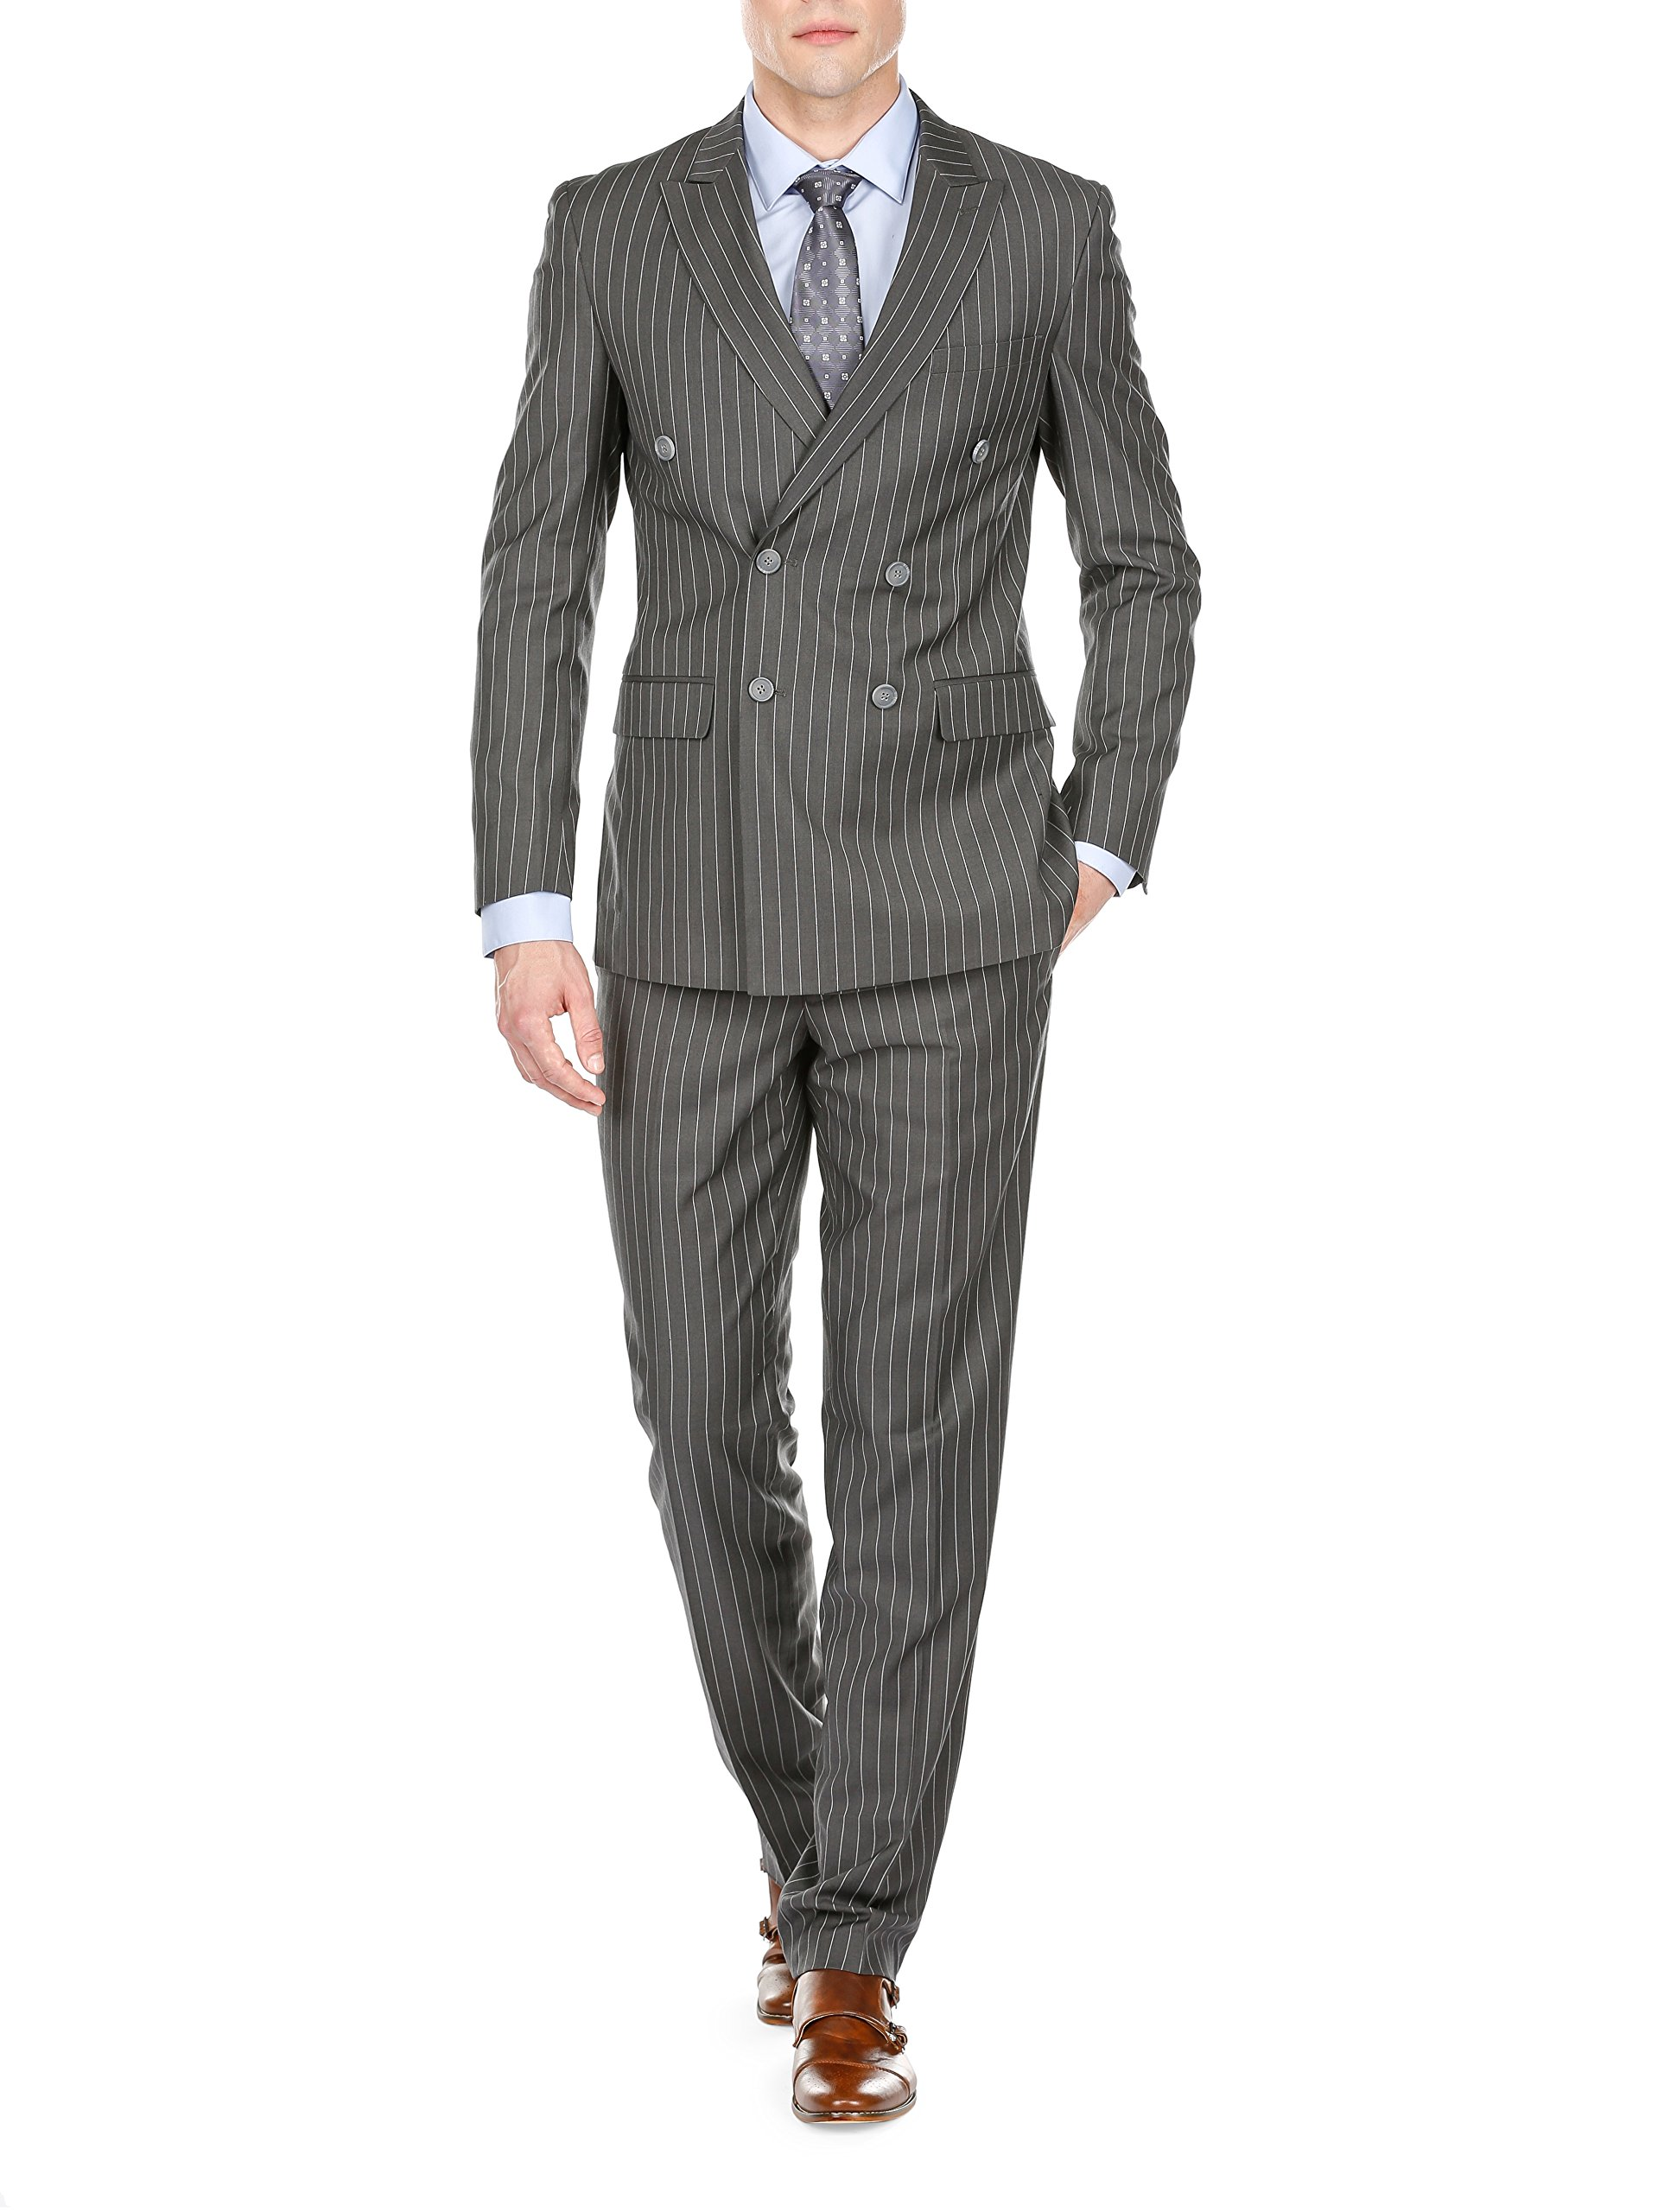 Braveman Men's Slim Fit Bold Stripe Double Breasted Suits, Dark Gray, Size 46R/40W